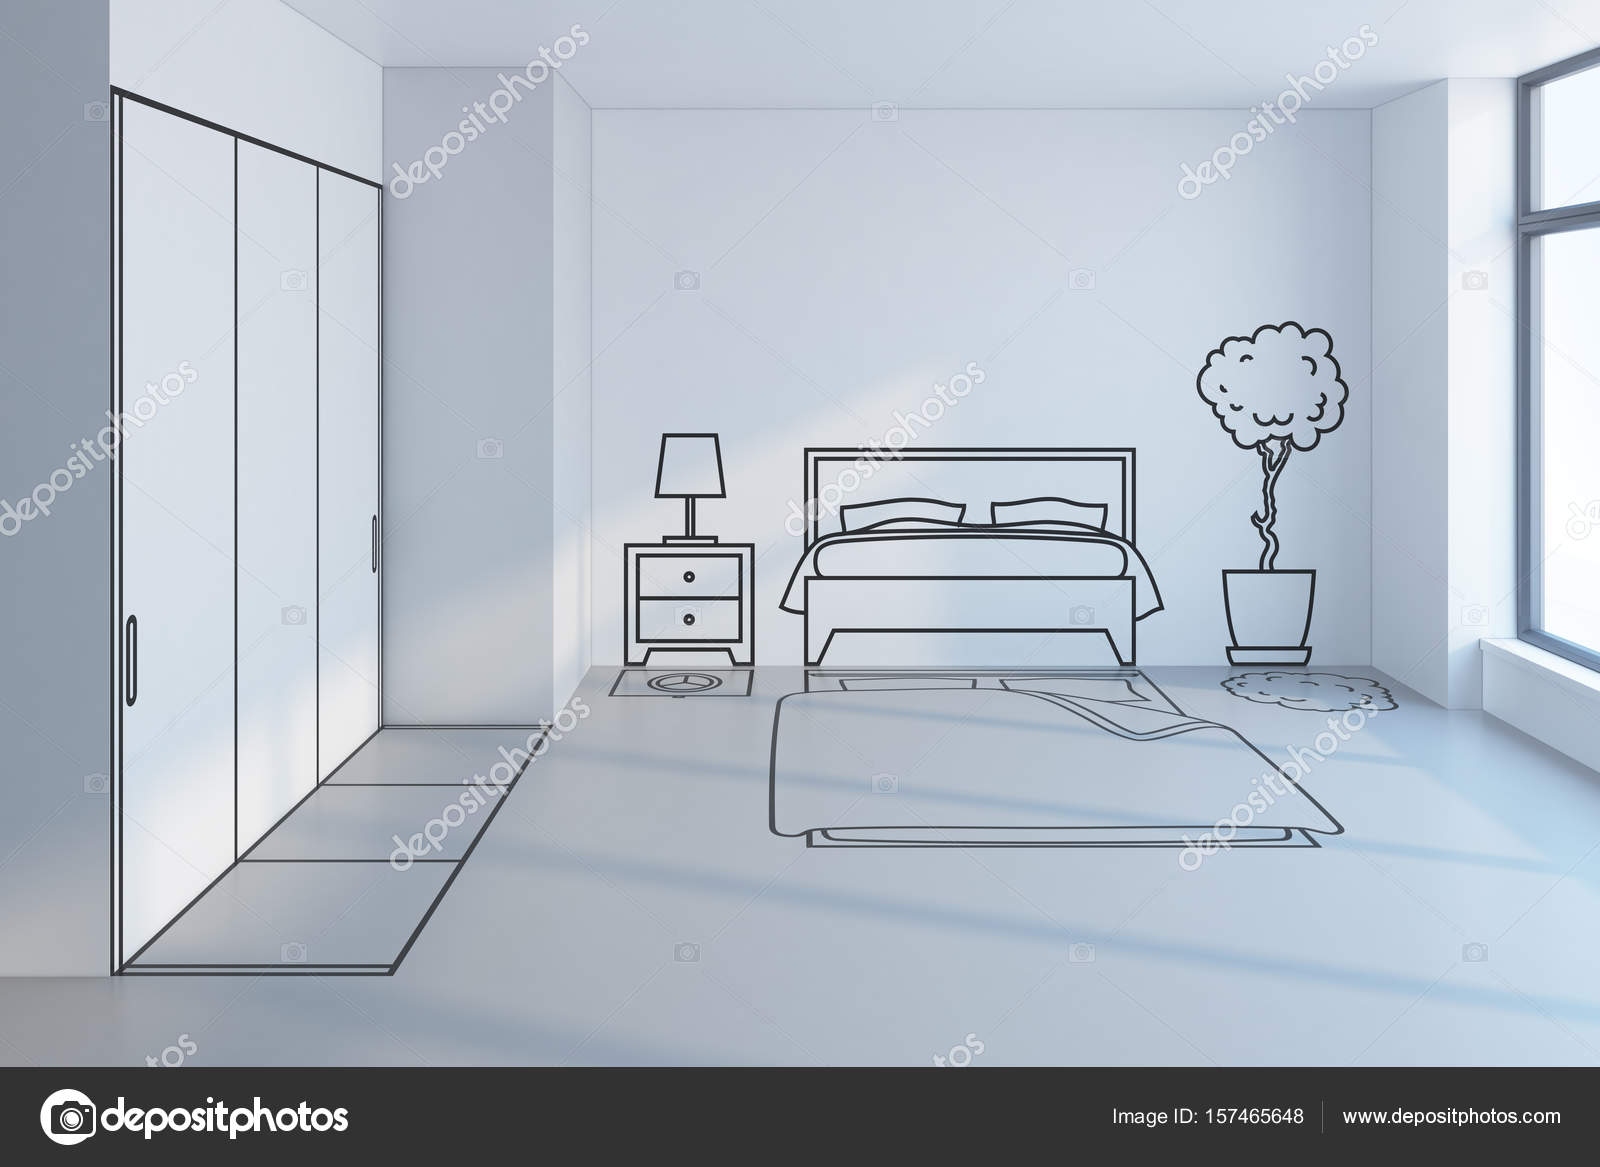 Awesome progettare la camera da letto ideas home for Progettare camera da letto 3d